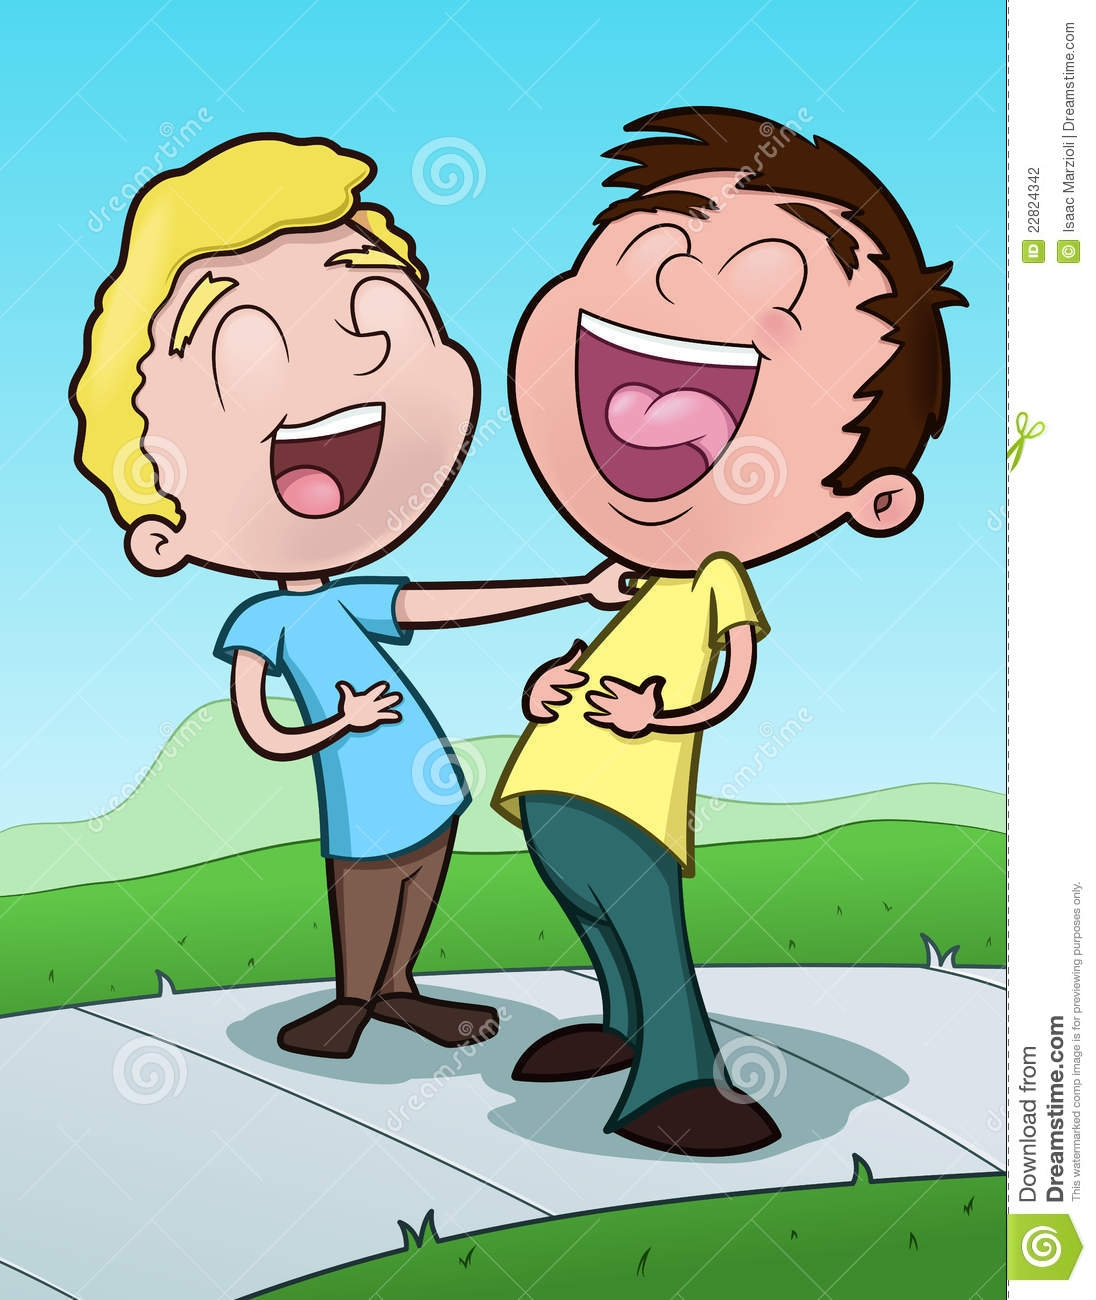 In class clipartfest student. Clipart kids laughing